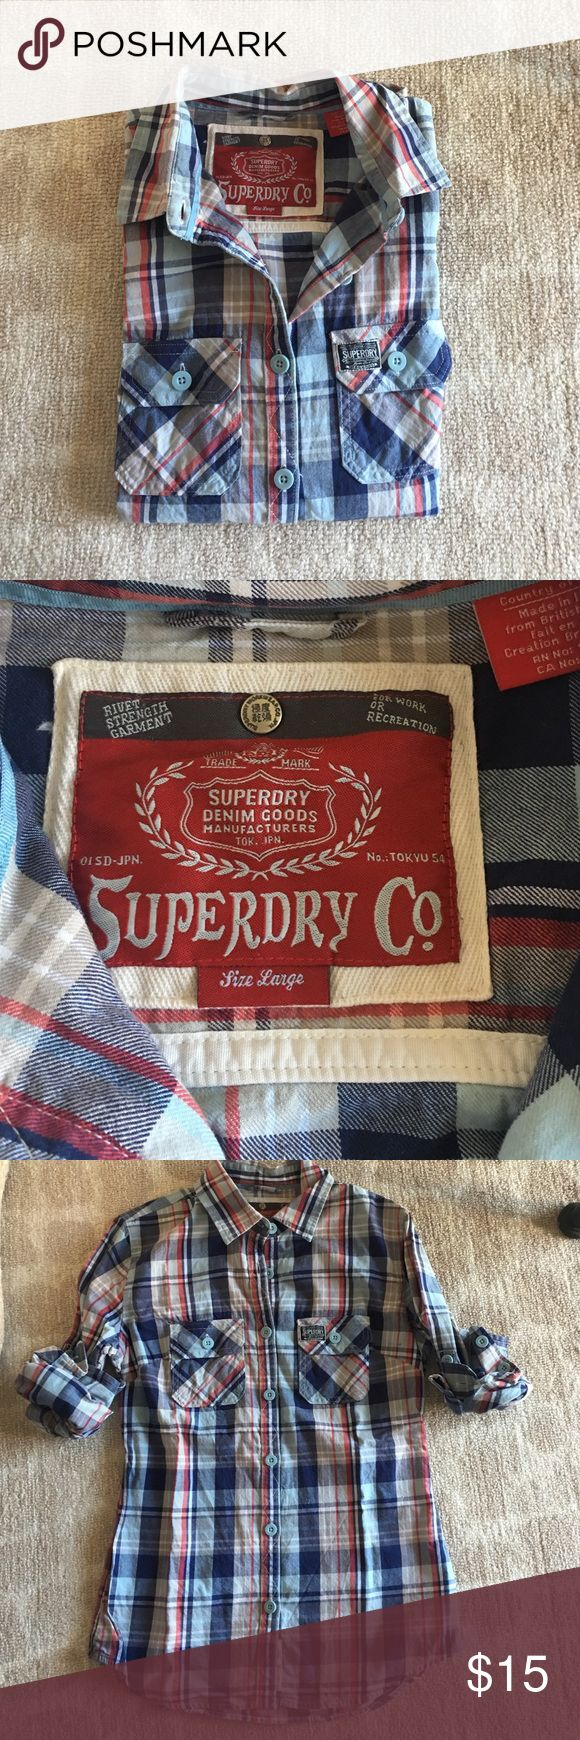 """Superdry Plaid Shirt Plaid shirt, light weight. Size """"Large"""" but runs very small. Closer to a small or xs. Excellent condition! Superdry Tops Button Down Shirts"""